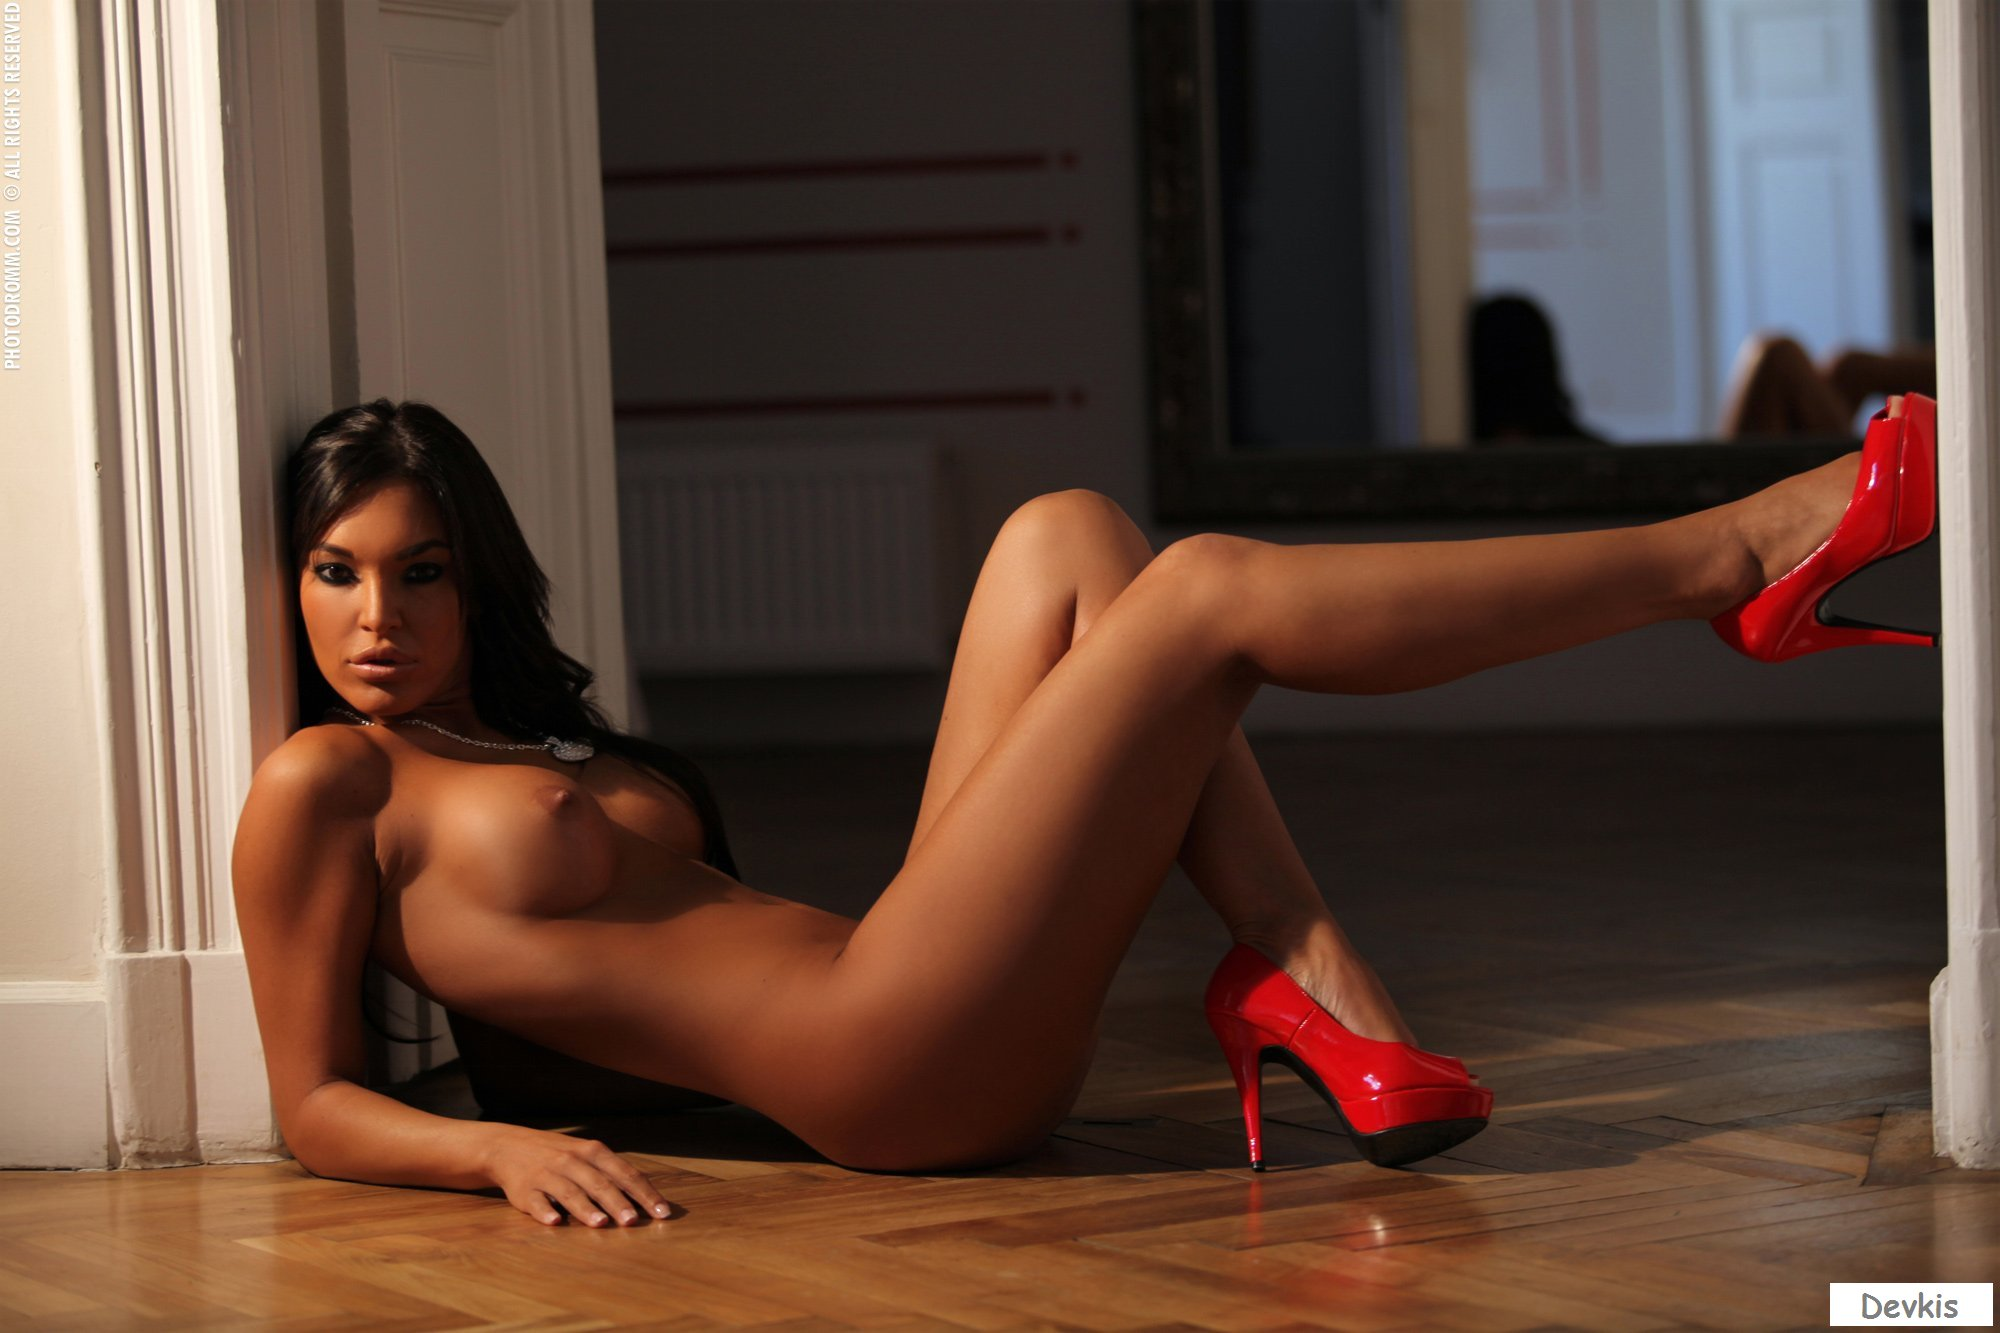 Free high heels, stockings pictures